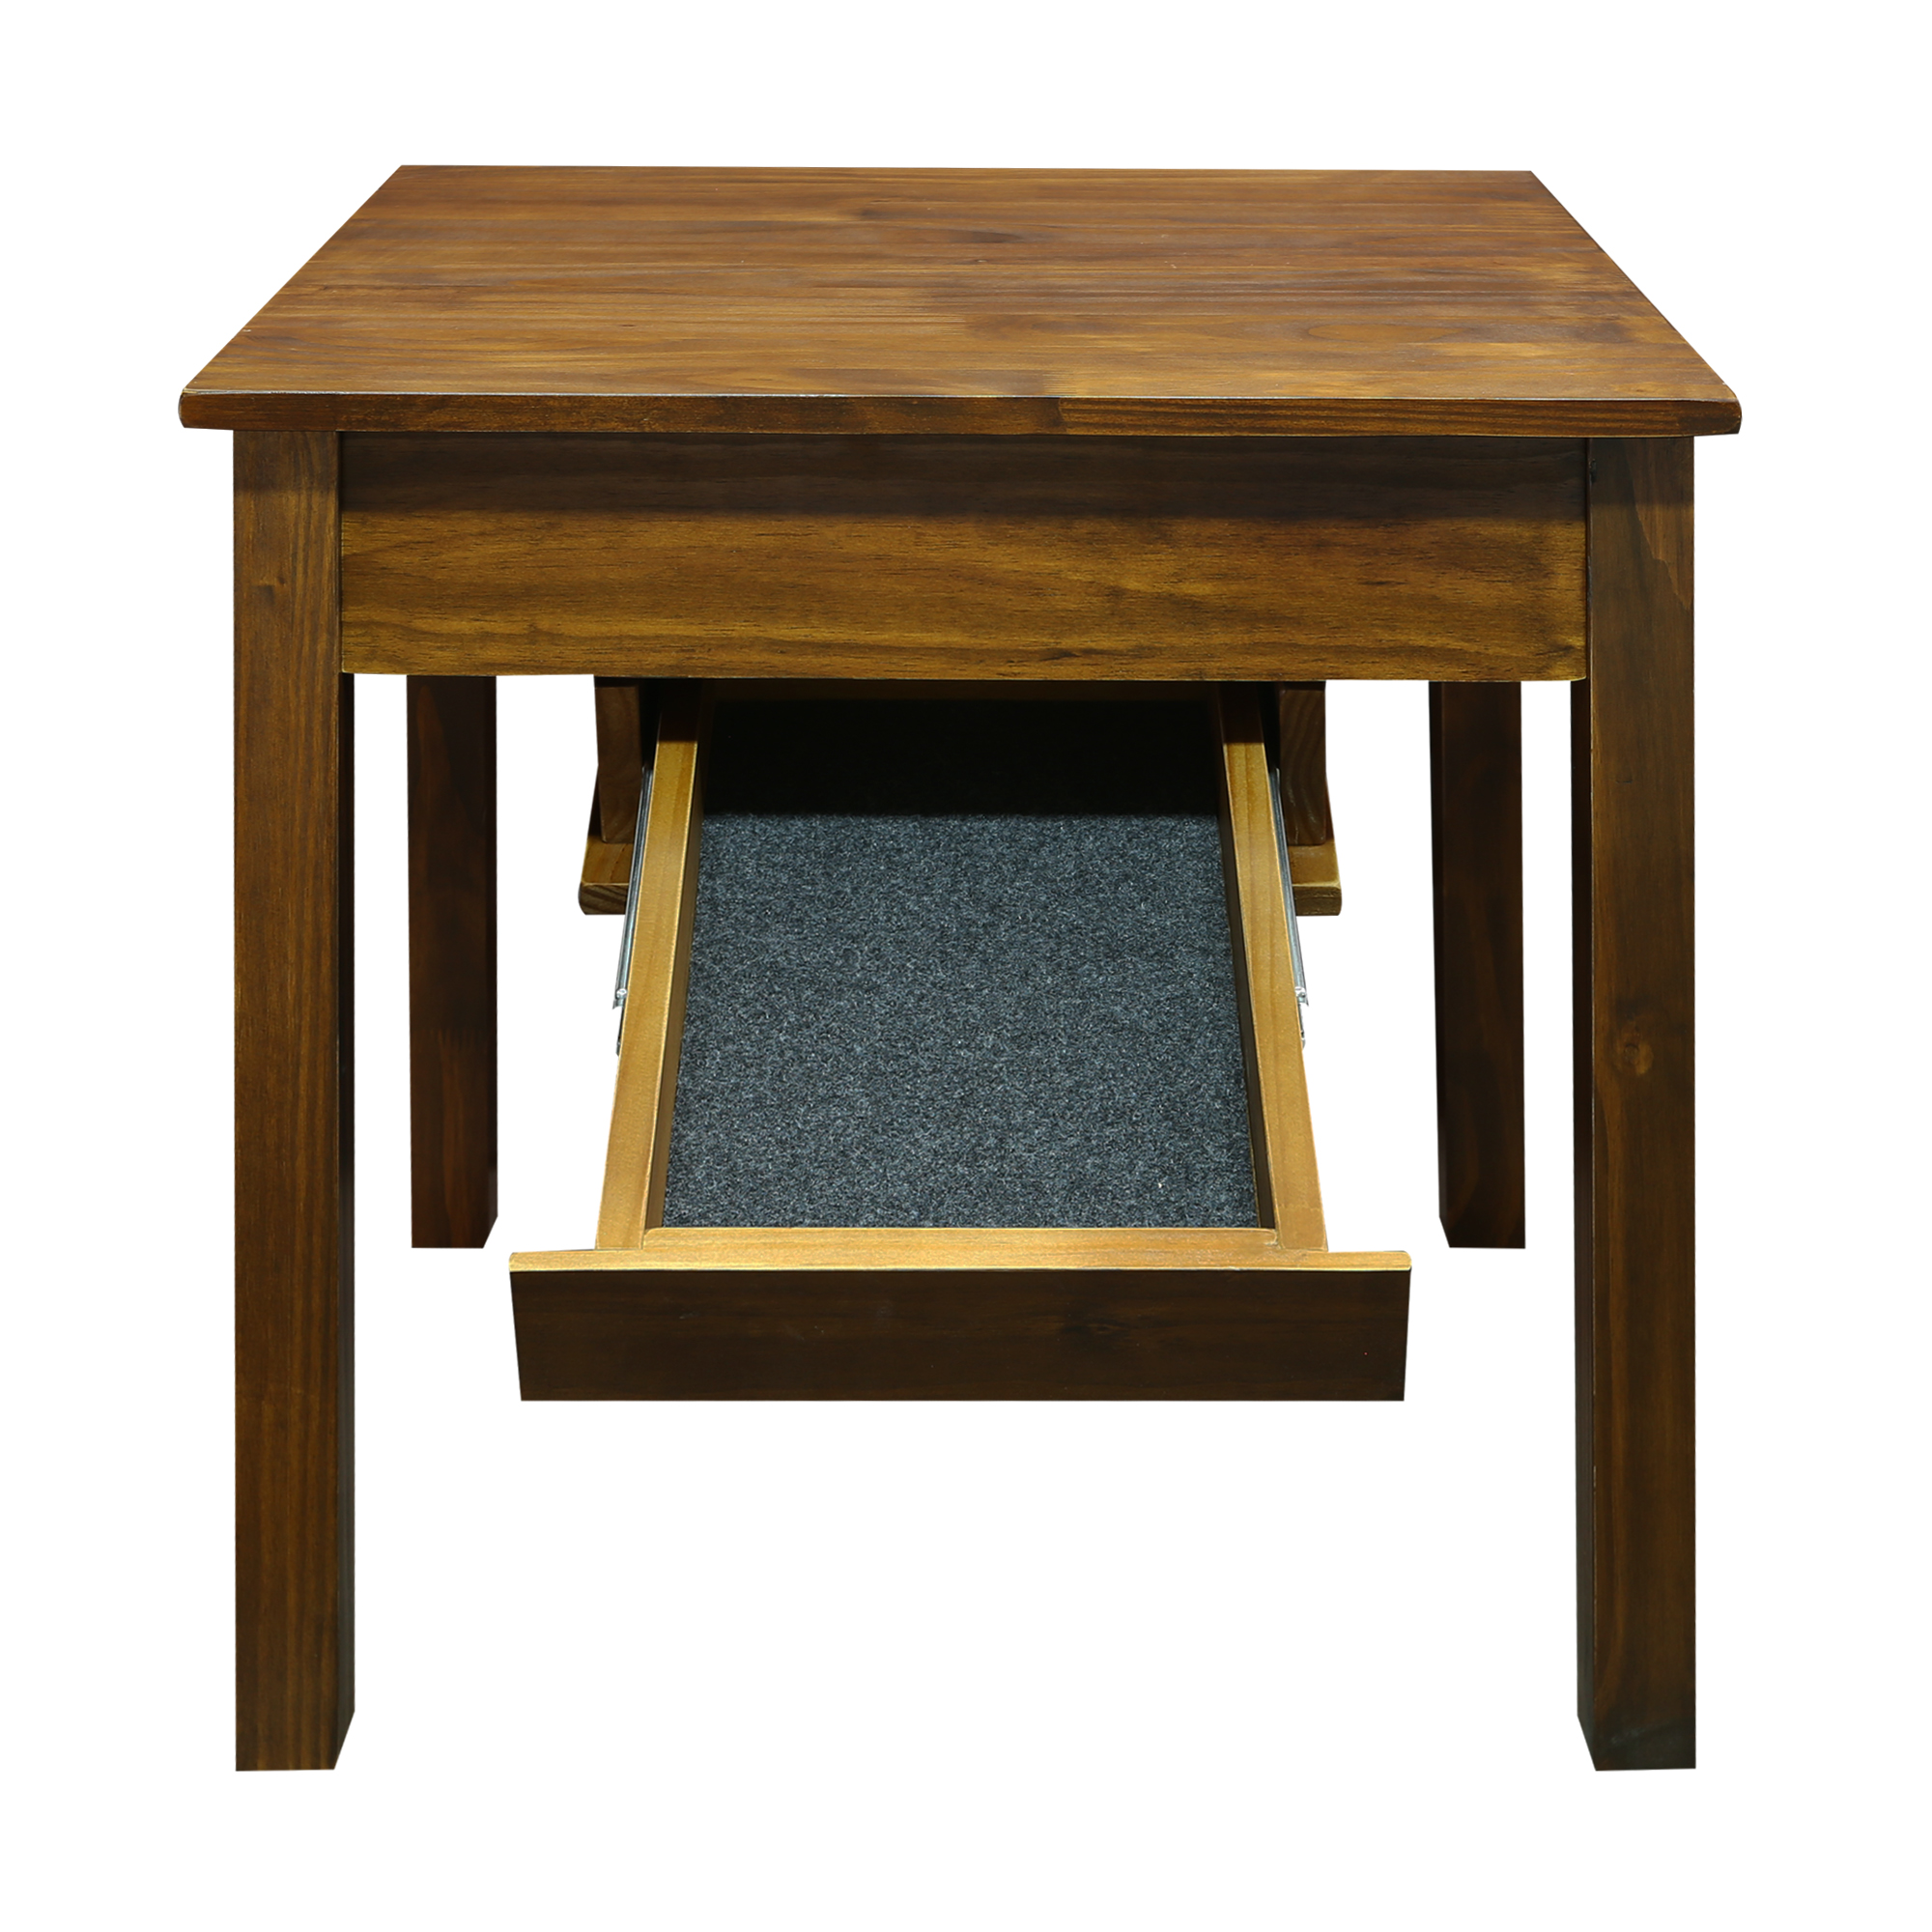 Kennedy Table With Concealed Drawer Concealment Furniture Casual Home